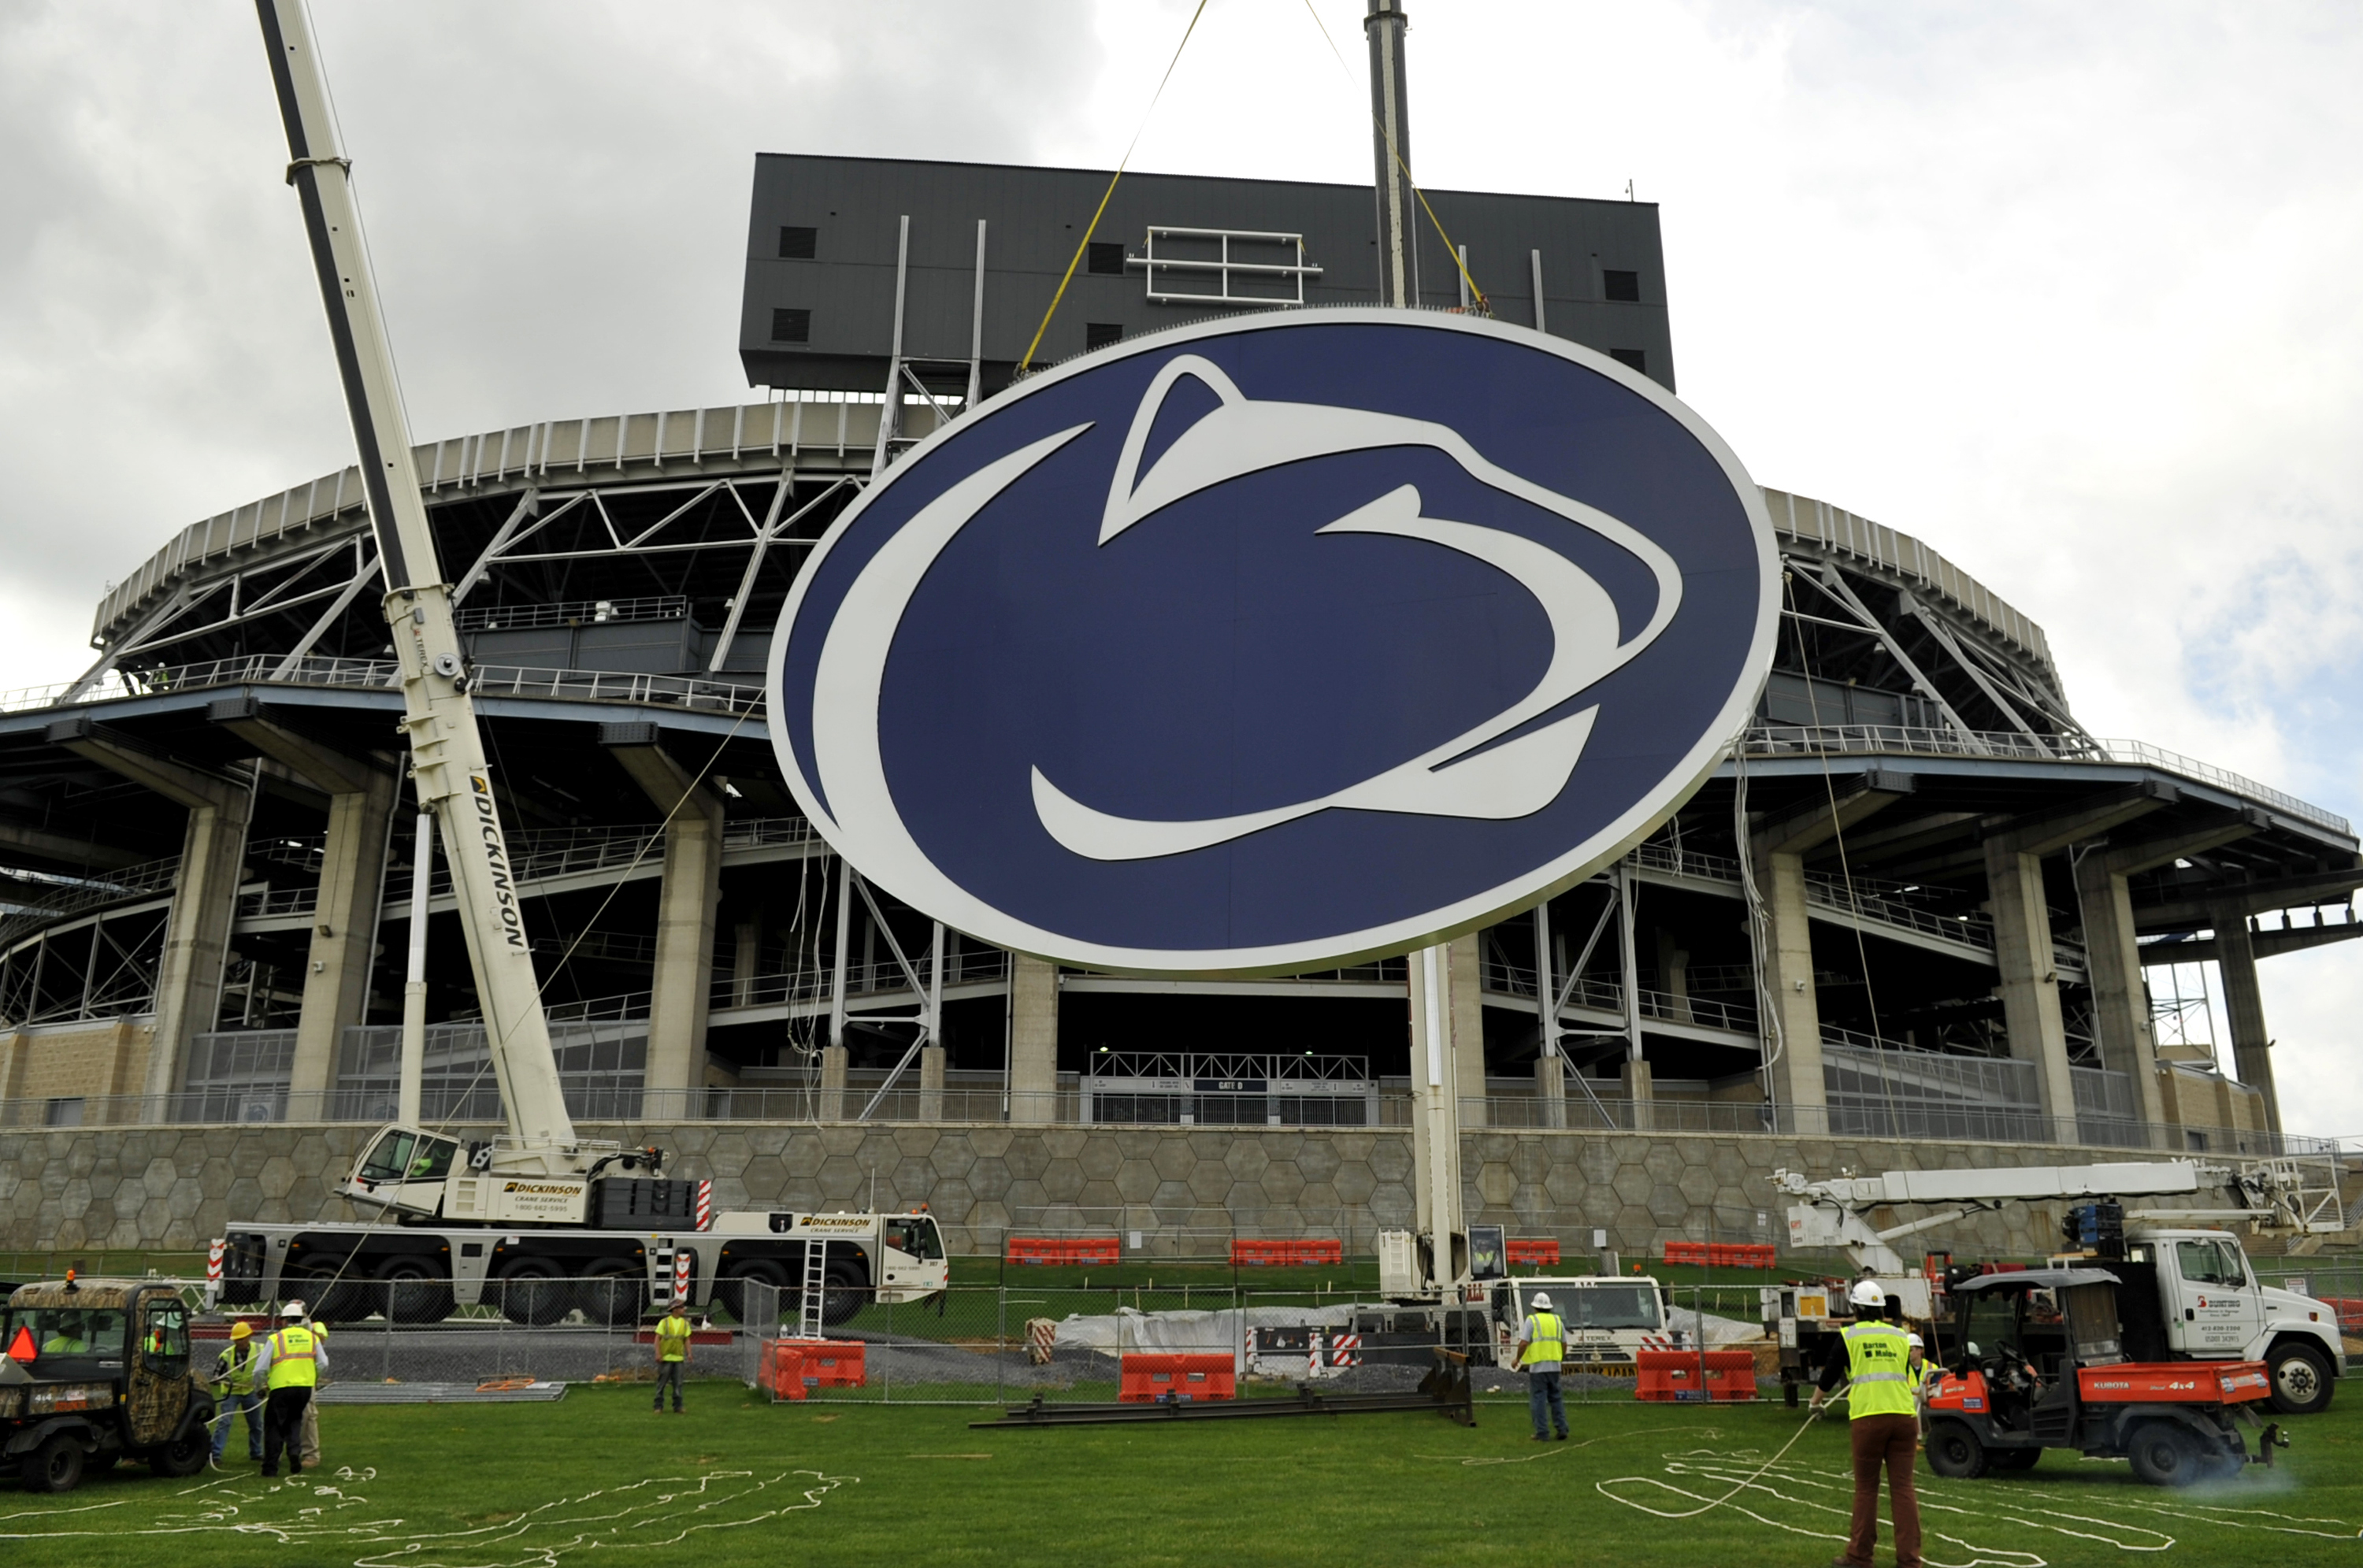 """In this May 15, 2014 file photo, a logo is lifted by crane to the back of a scoreboard at Penn State's Beaver Stadium in State College, Pa.   Judge Gary Glazer is expected to release records Tuesday, July 12, 2016, that also may contain details about claims Penn State assistant coaches saw """"inappropriate contact"""" and """"sexual contact"""" between Sandusky and a child in 1987 and 1988. AP Photo/Centre Daily Times, Nabil K. Mark."""